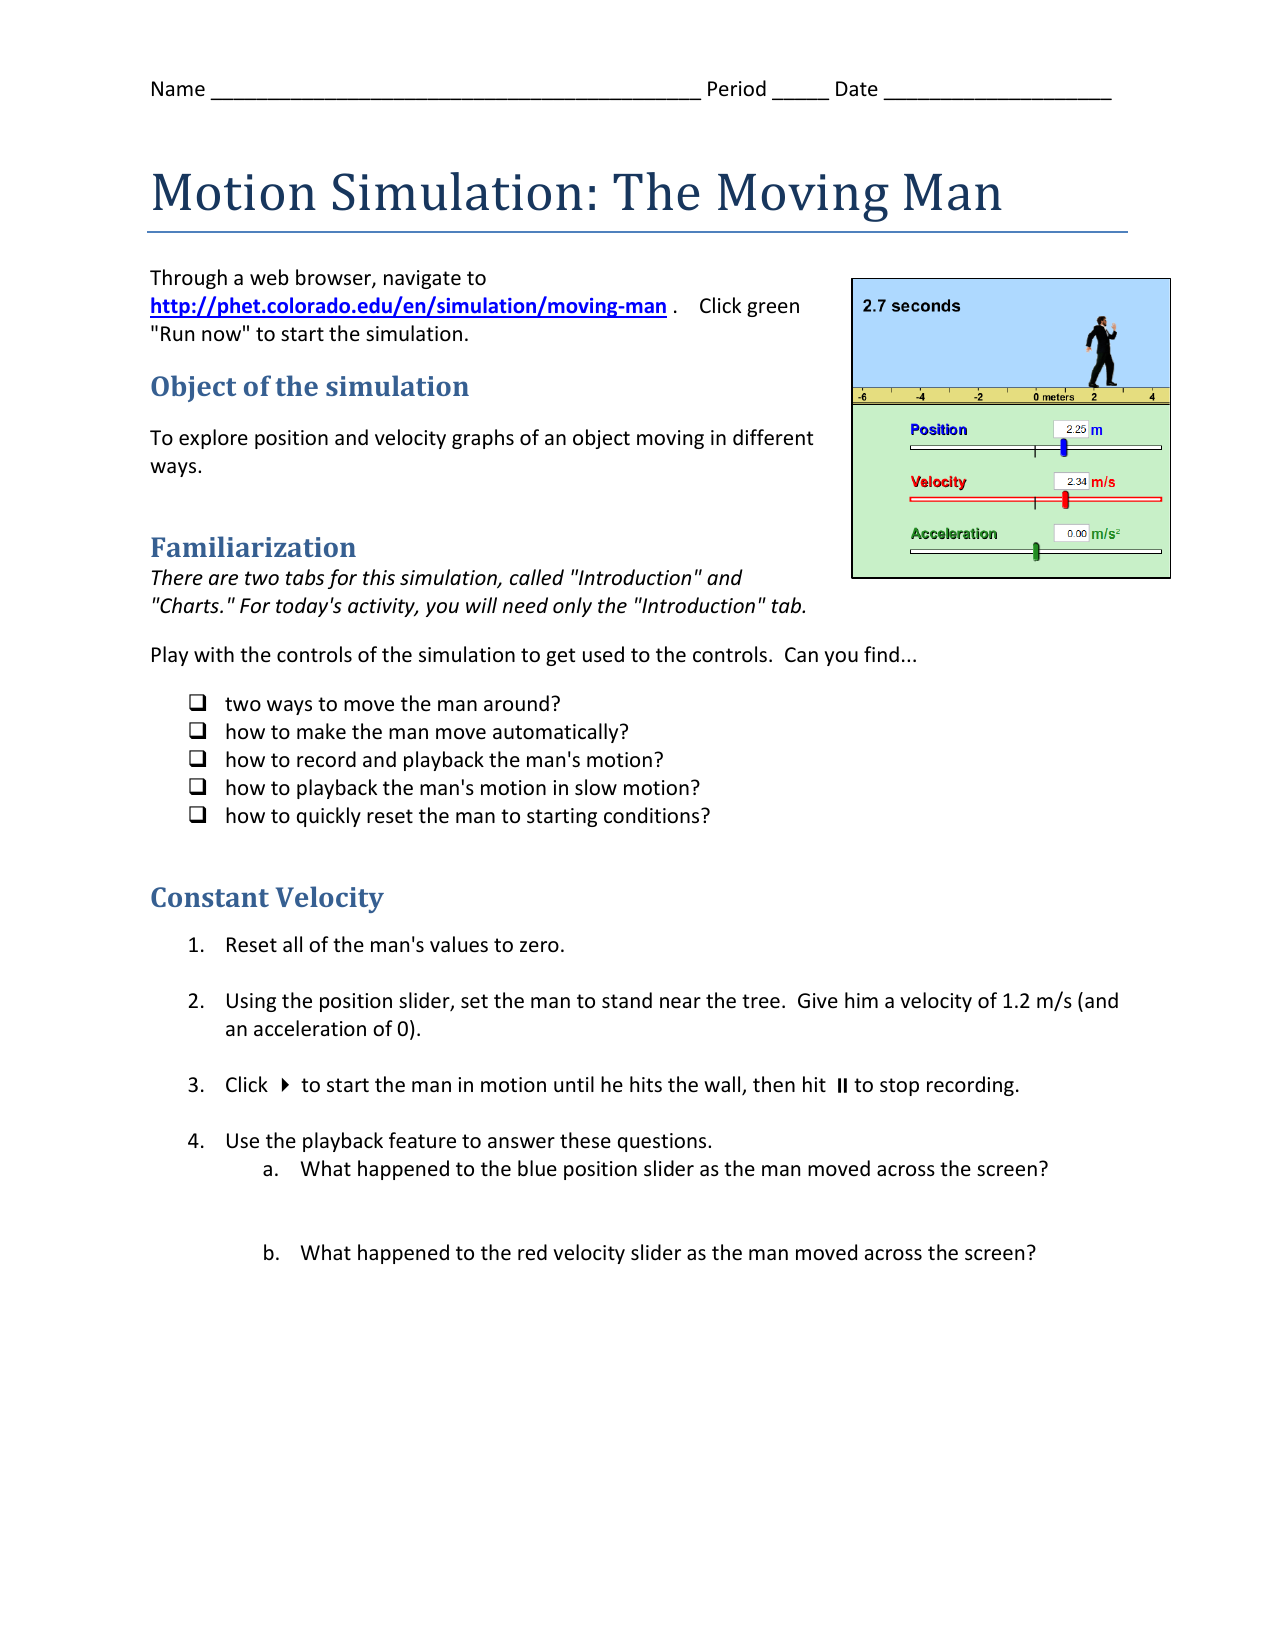 Motion Simulation The Moving Man Worksheet Answers on Forces And Motion Phet